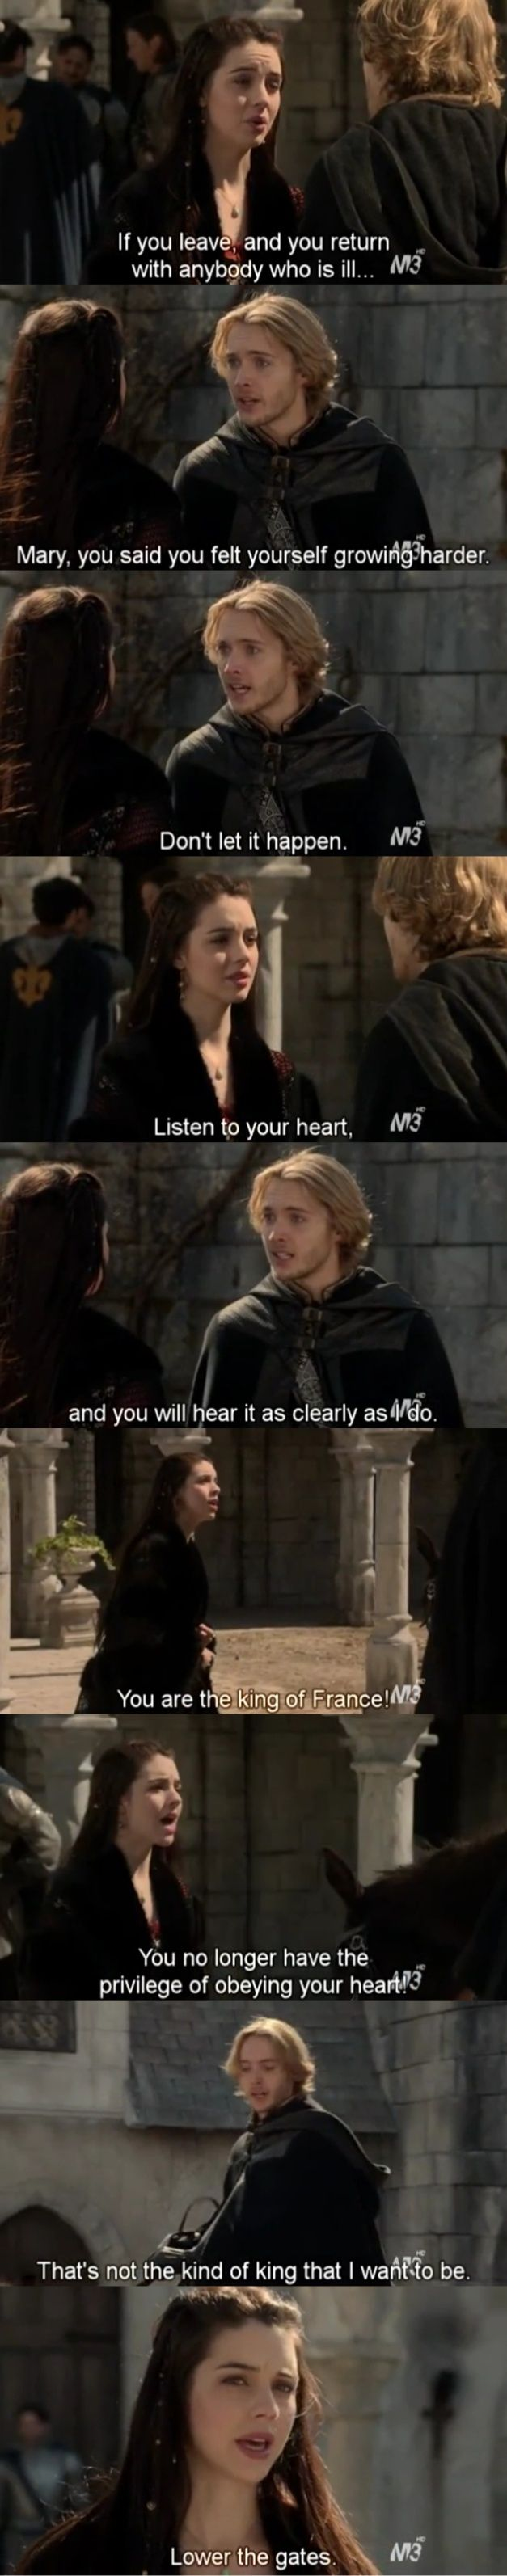 Frary 1x22 Reign 1. Season Final. Oh my gosh my heart. The finale killed me. Oh gosh I cried!!